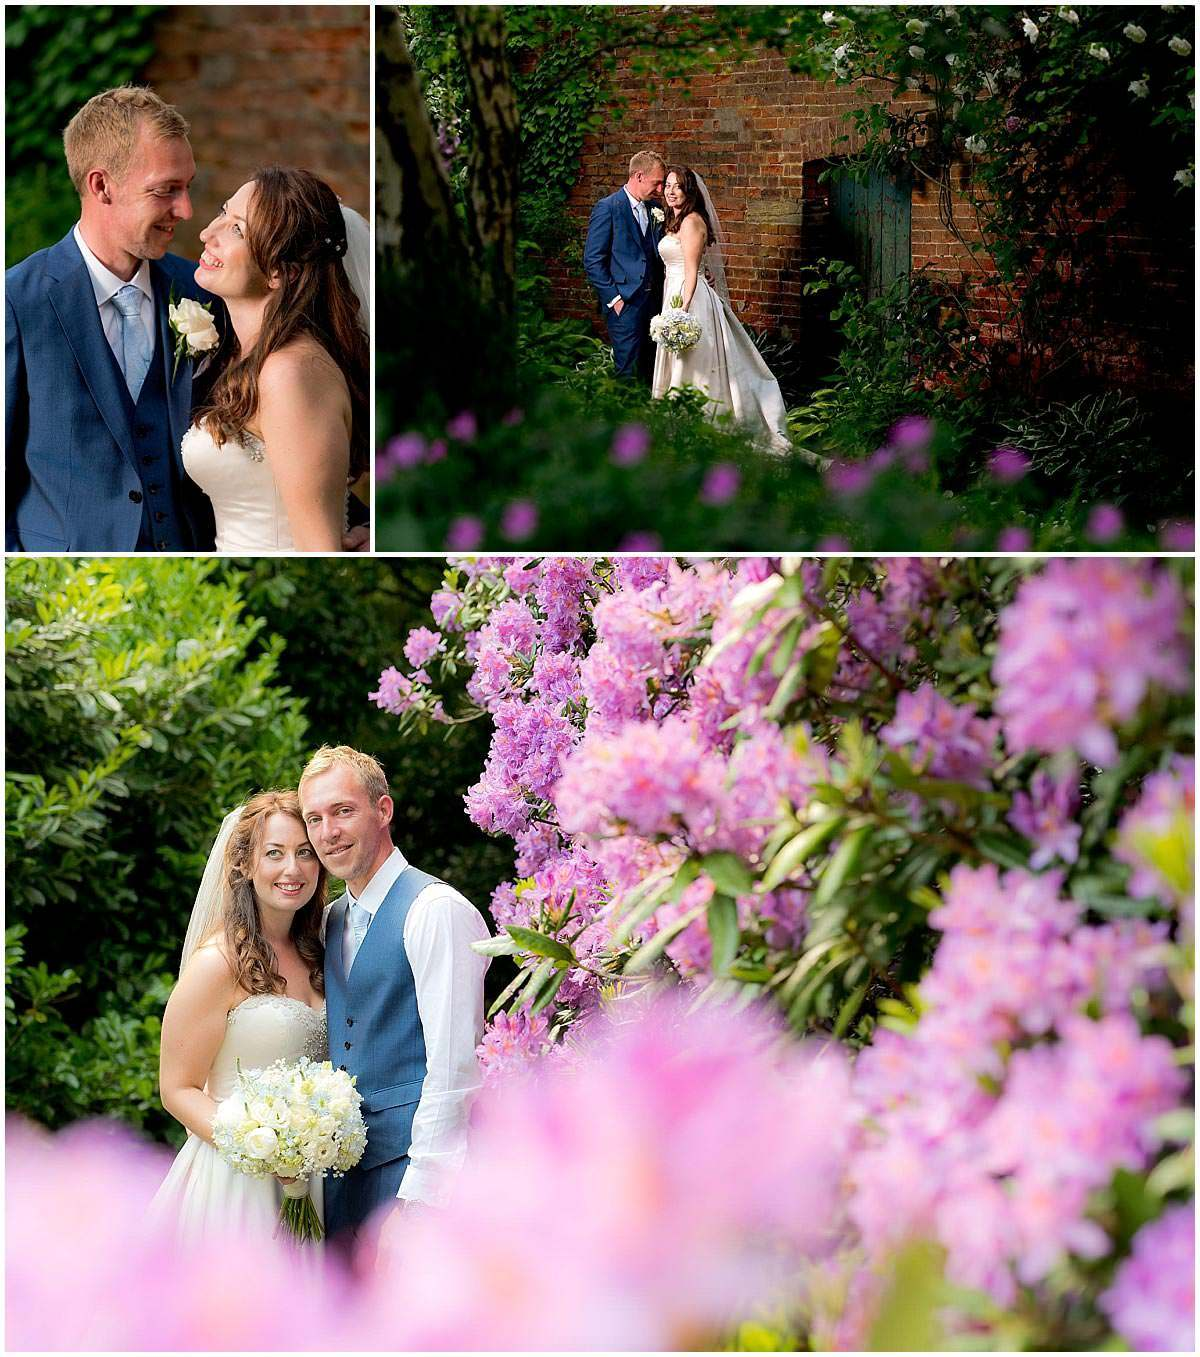 Outdoor Walled Garden Portraits